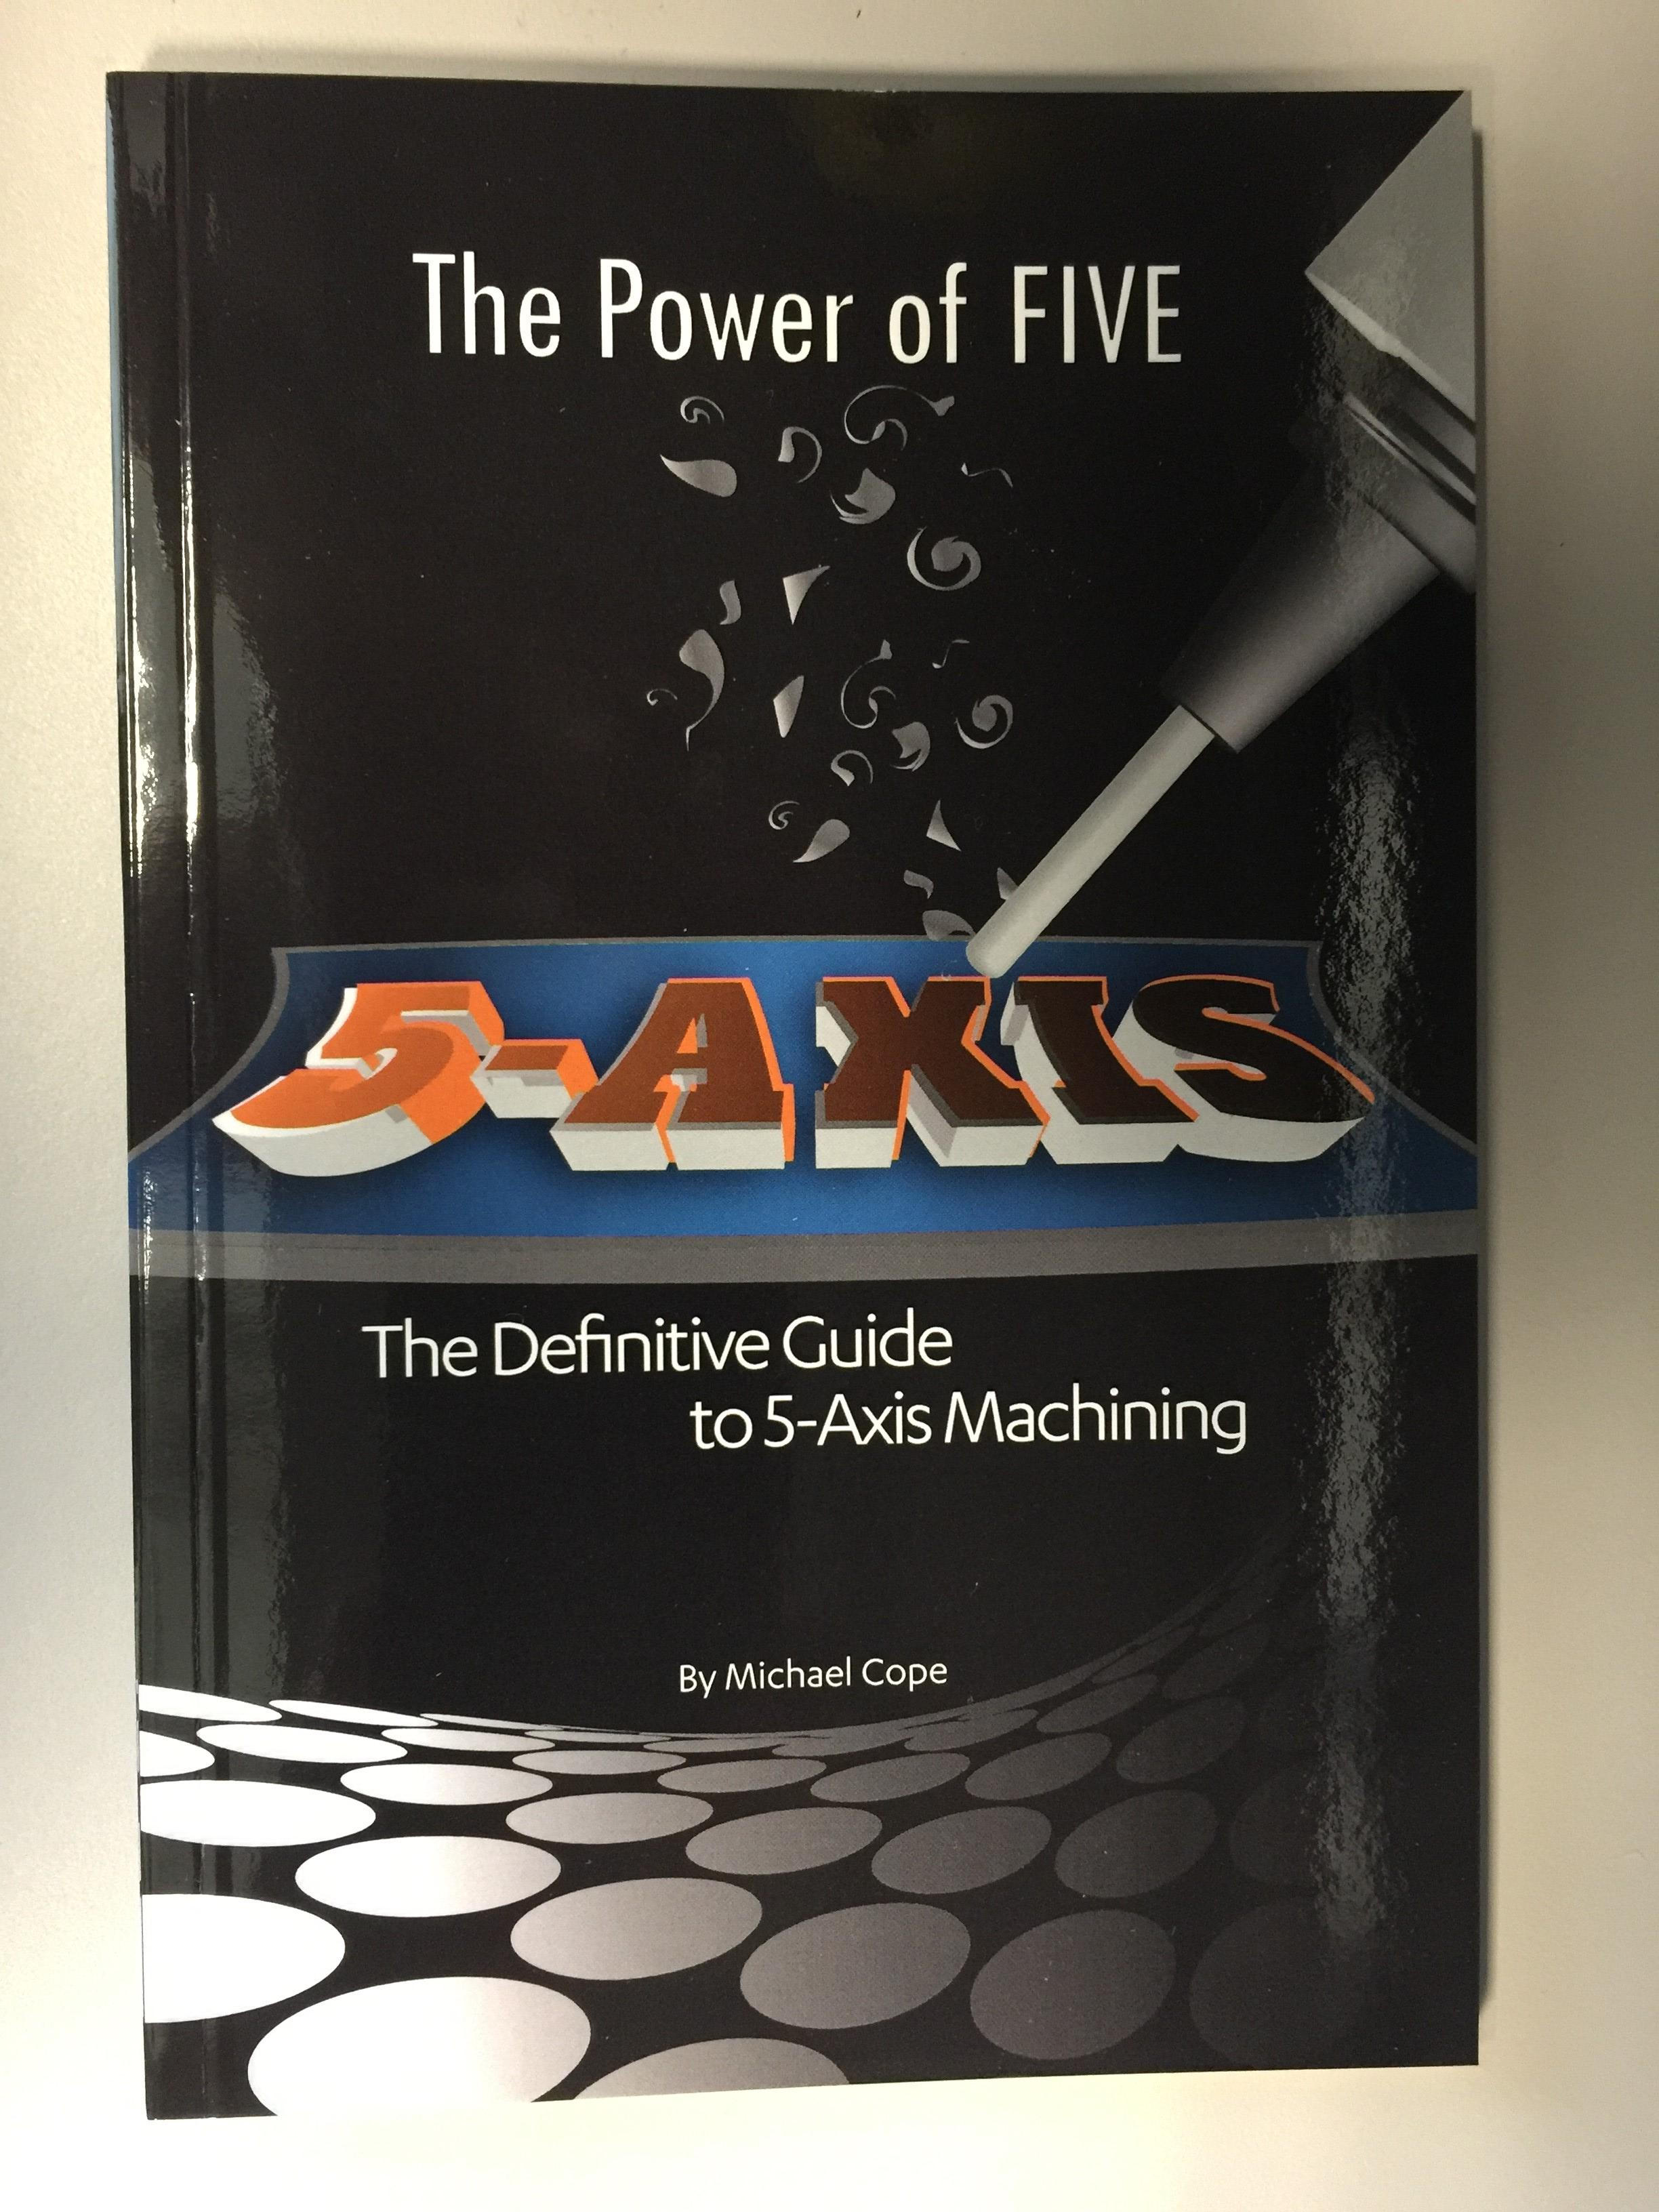 5-Axis CNC Book Release